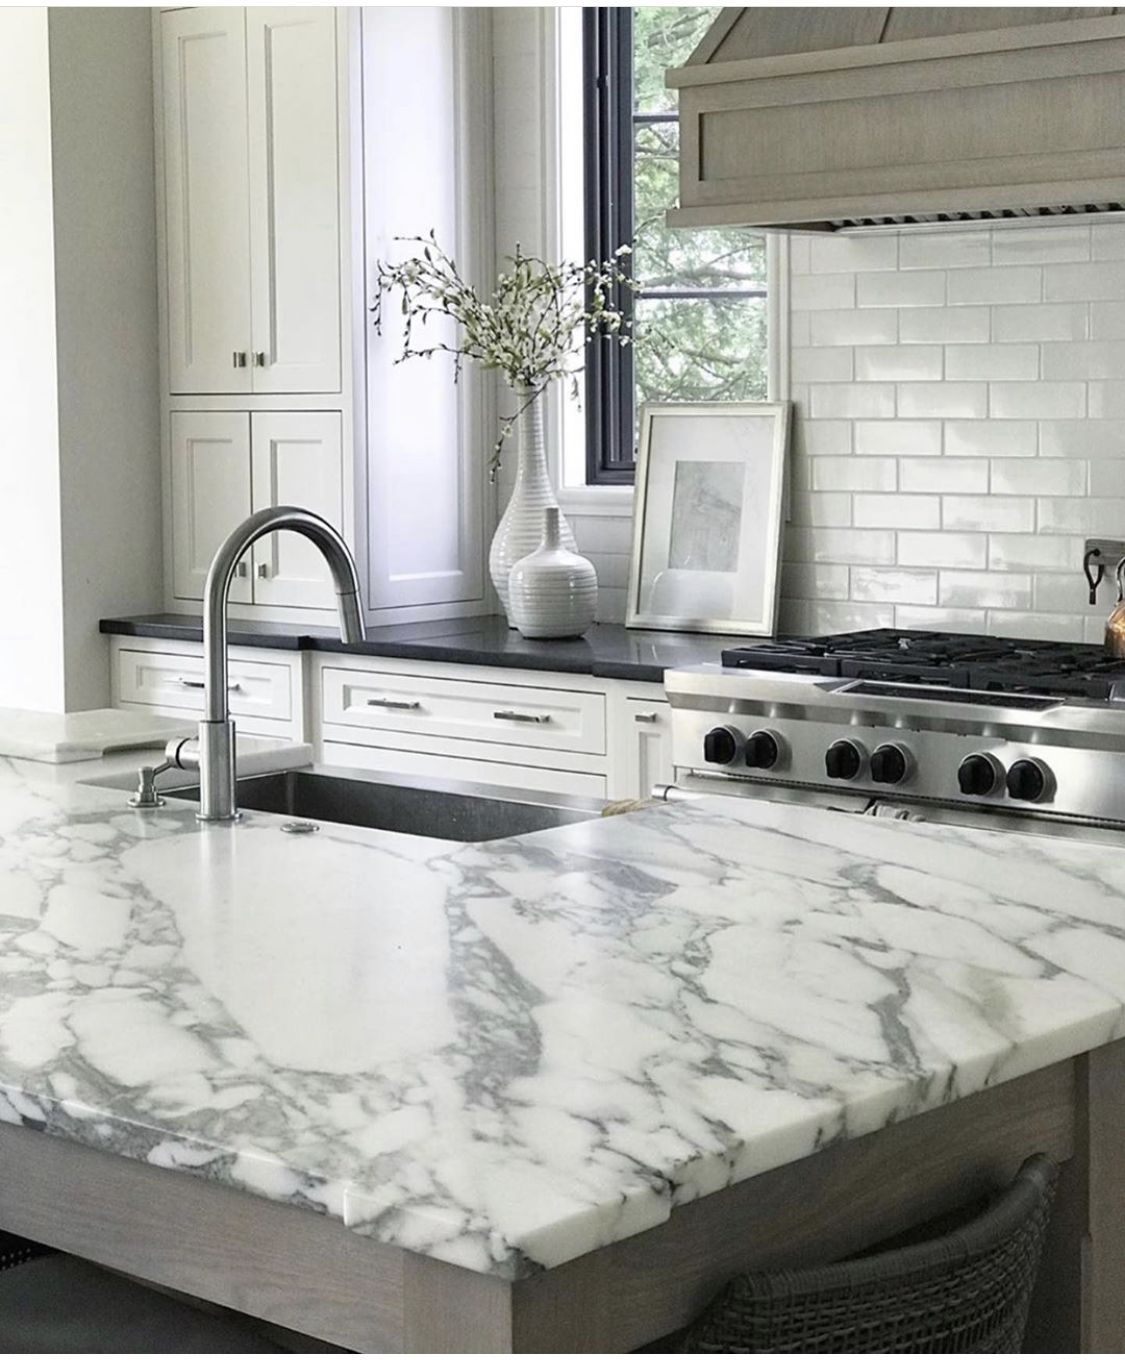 If You Want A Clean And Bright Look For Your Kitchen Using An All White Design Is The Key We Love In 2020 Custom Countertops Engineered Stone Countertops Countertops